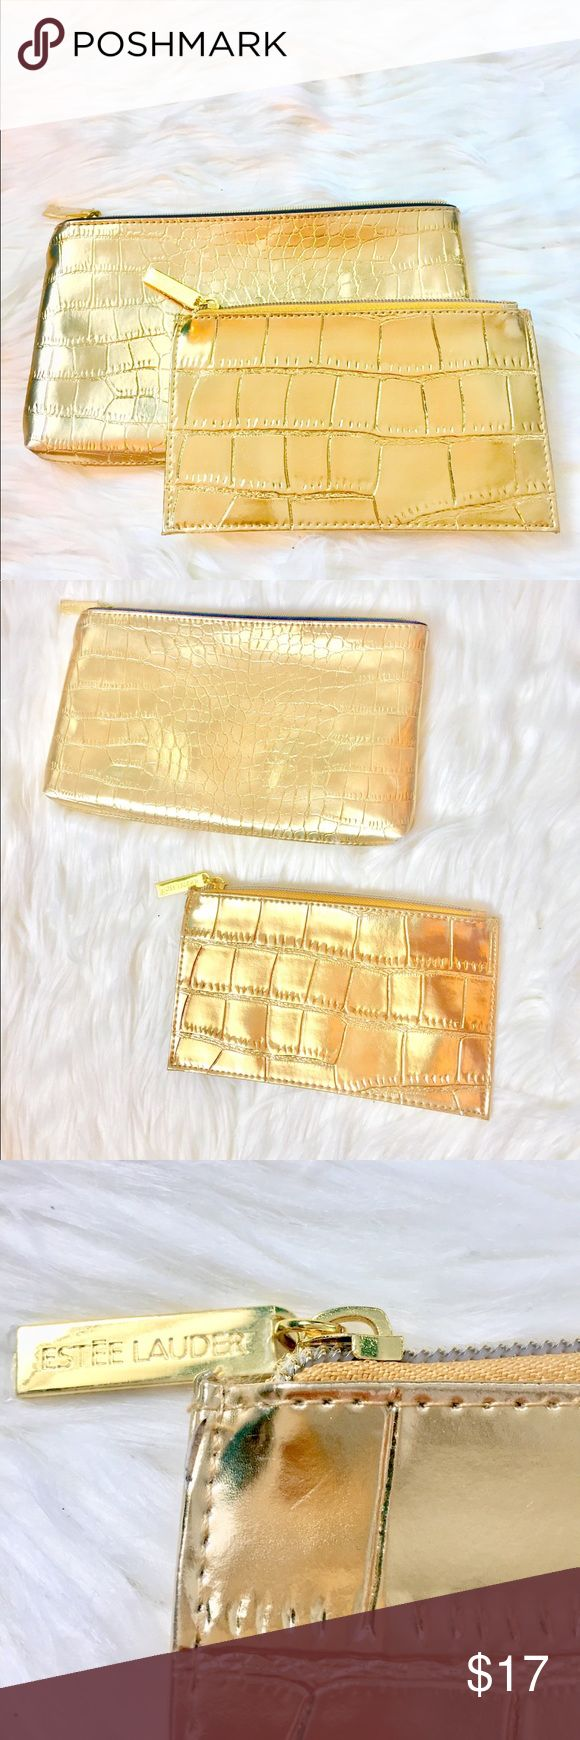 Estée Lauder Make Up Bags BRAND New!  PROMO: Every item comes with a free gift set Estee Lauder Bags Cosmetic Bags & Cases